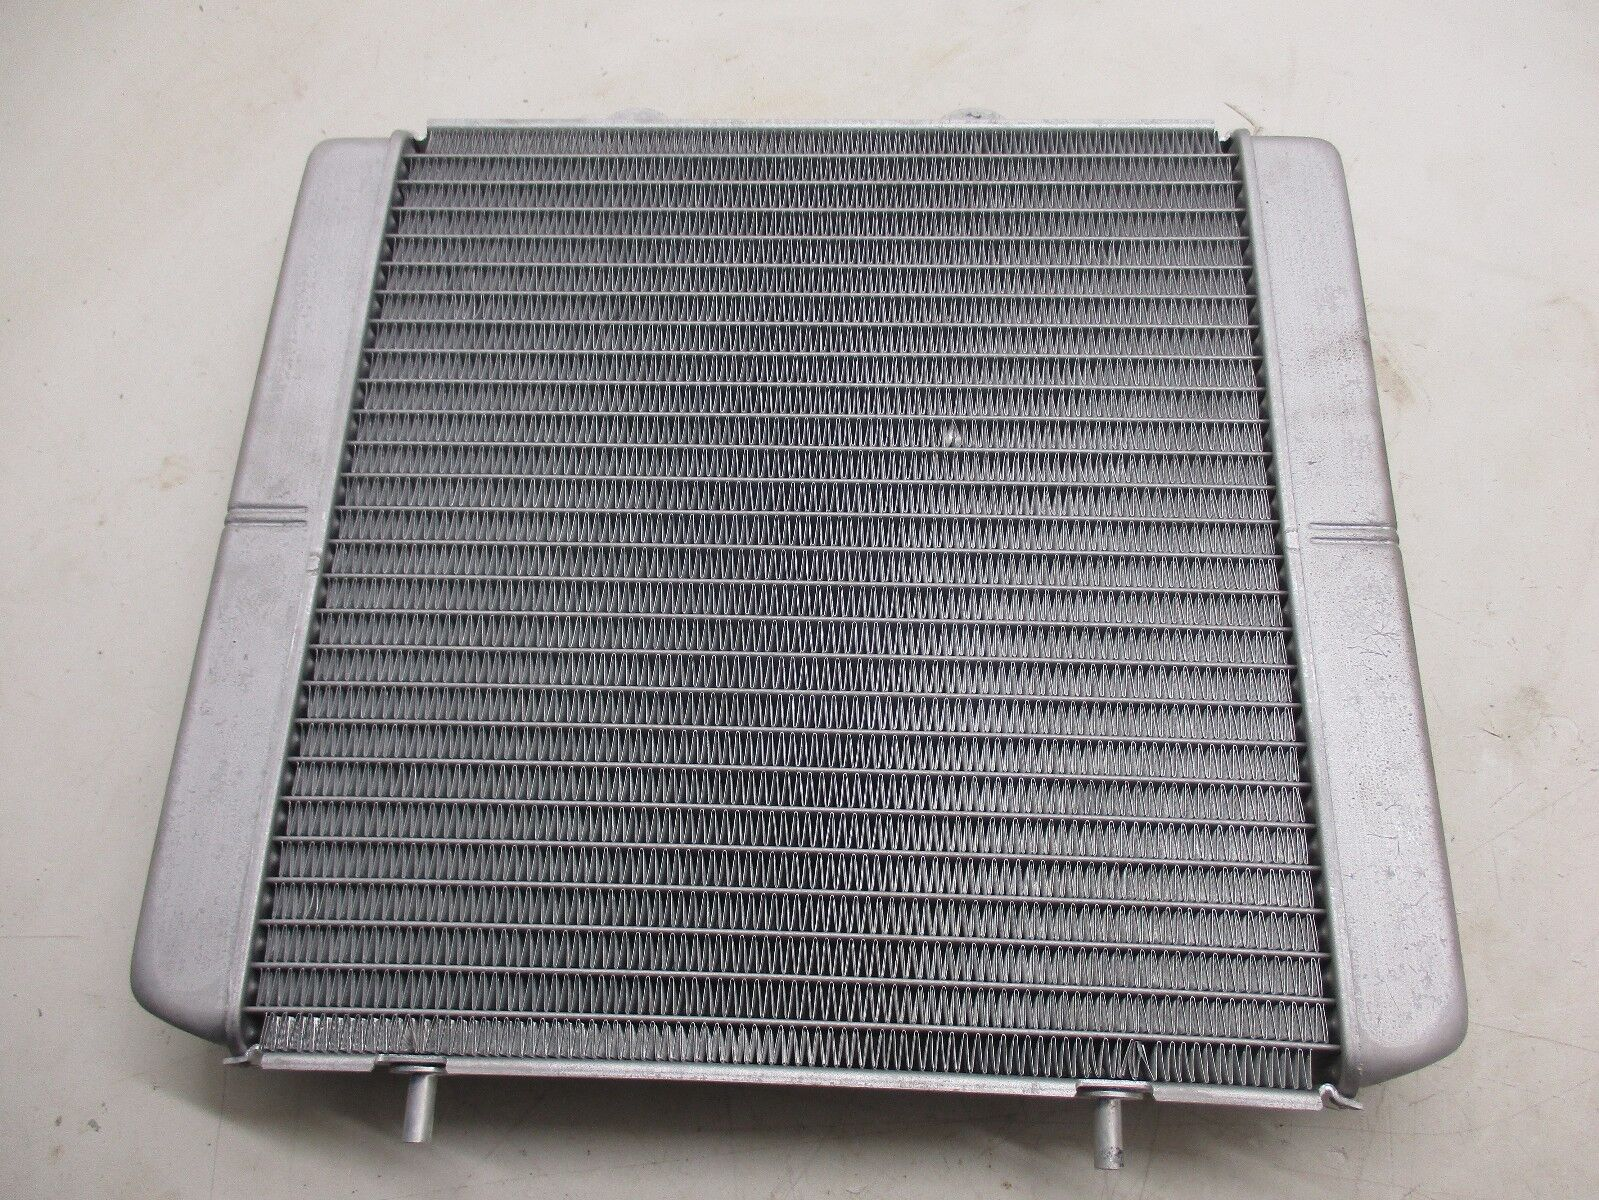 Polaris Sportsman Miscellaneous radiator, fits most Polaris Sportsman 2007-2017,